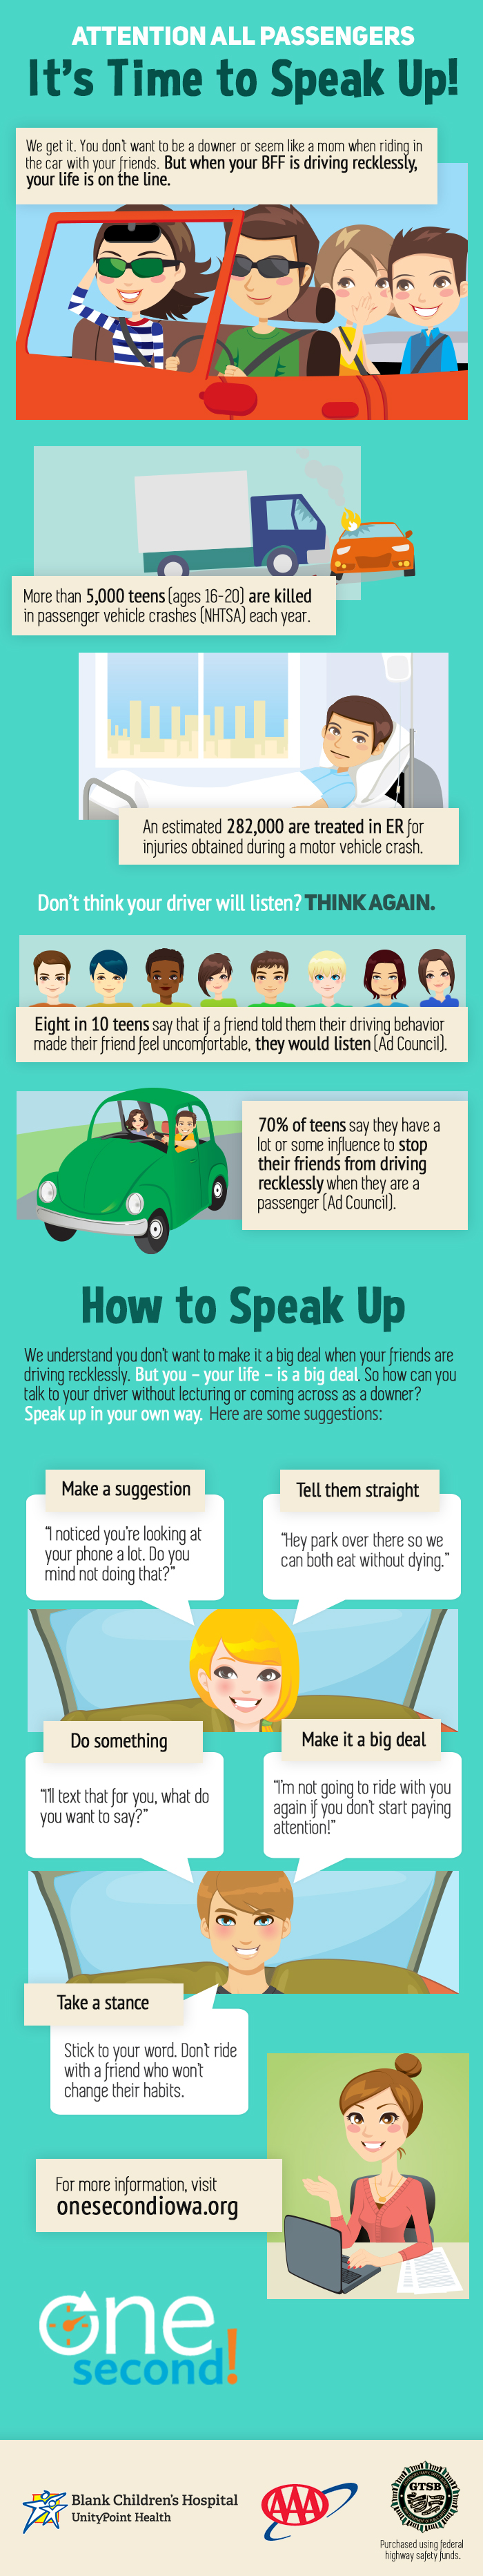 It's Time to Speak Up - Infographic - FINAL.jpg